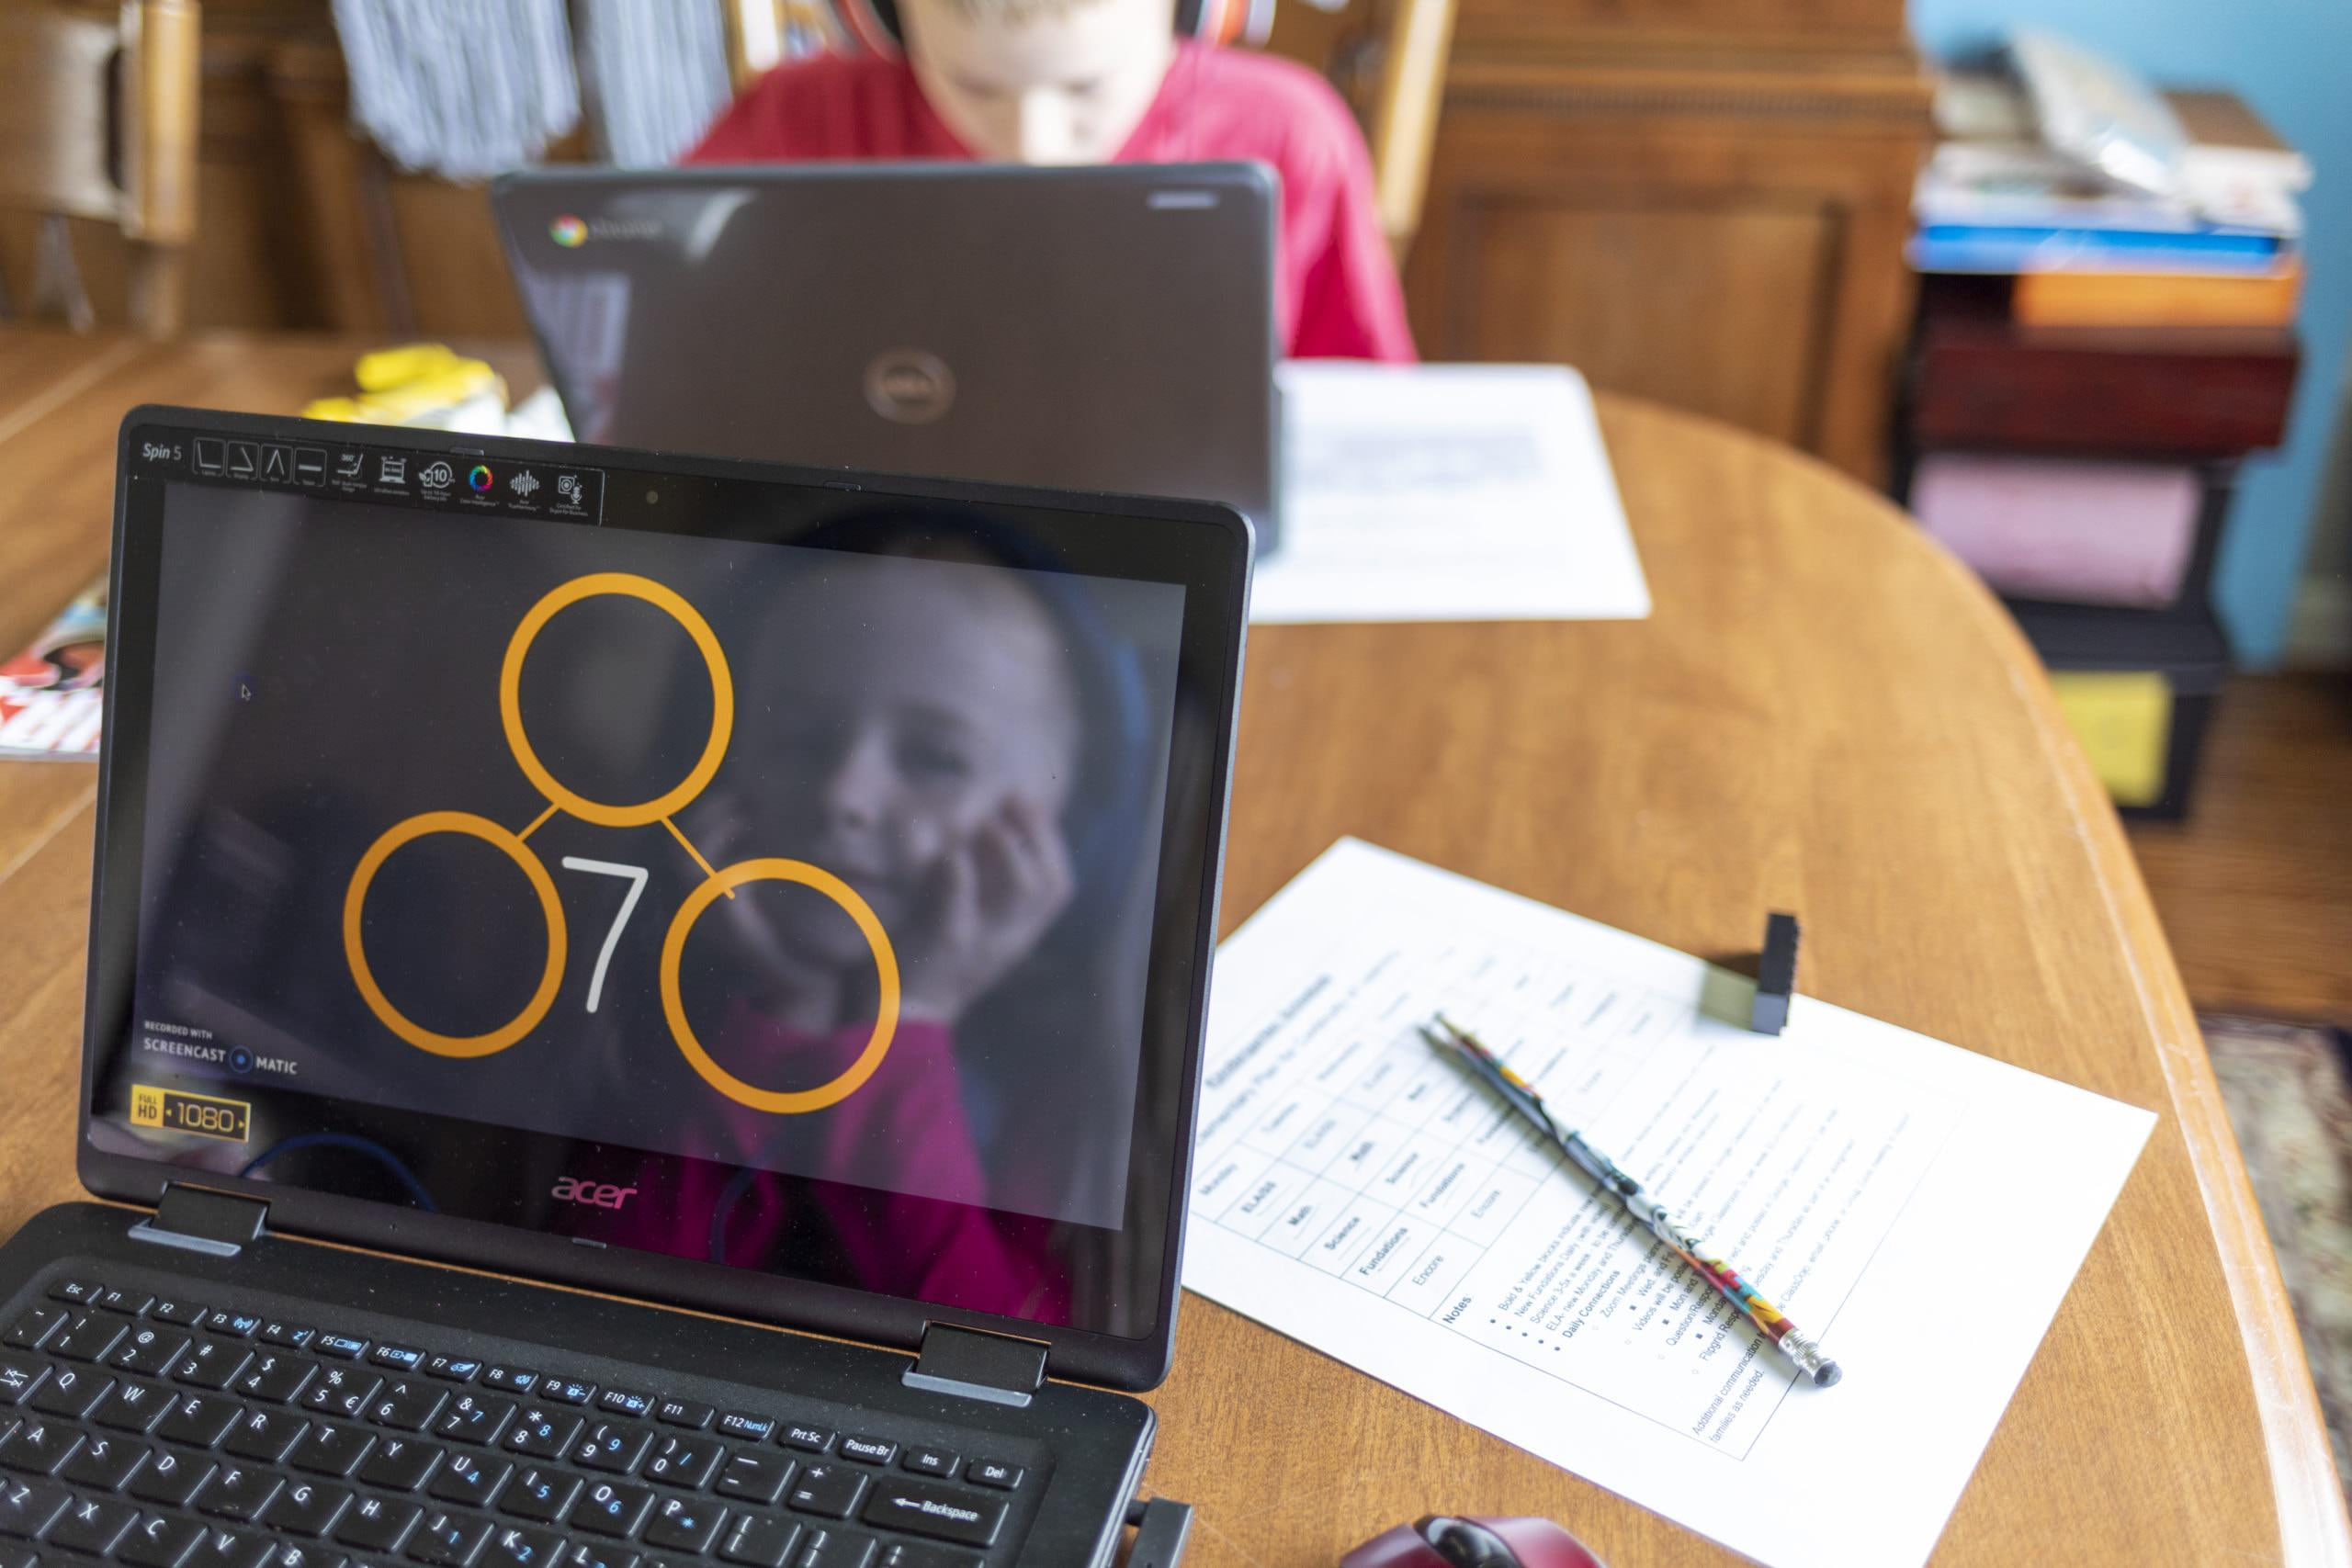 Home schooling, Google classroom. Kids learning at home.